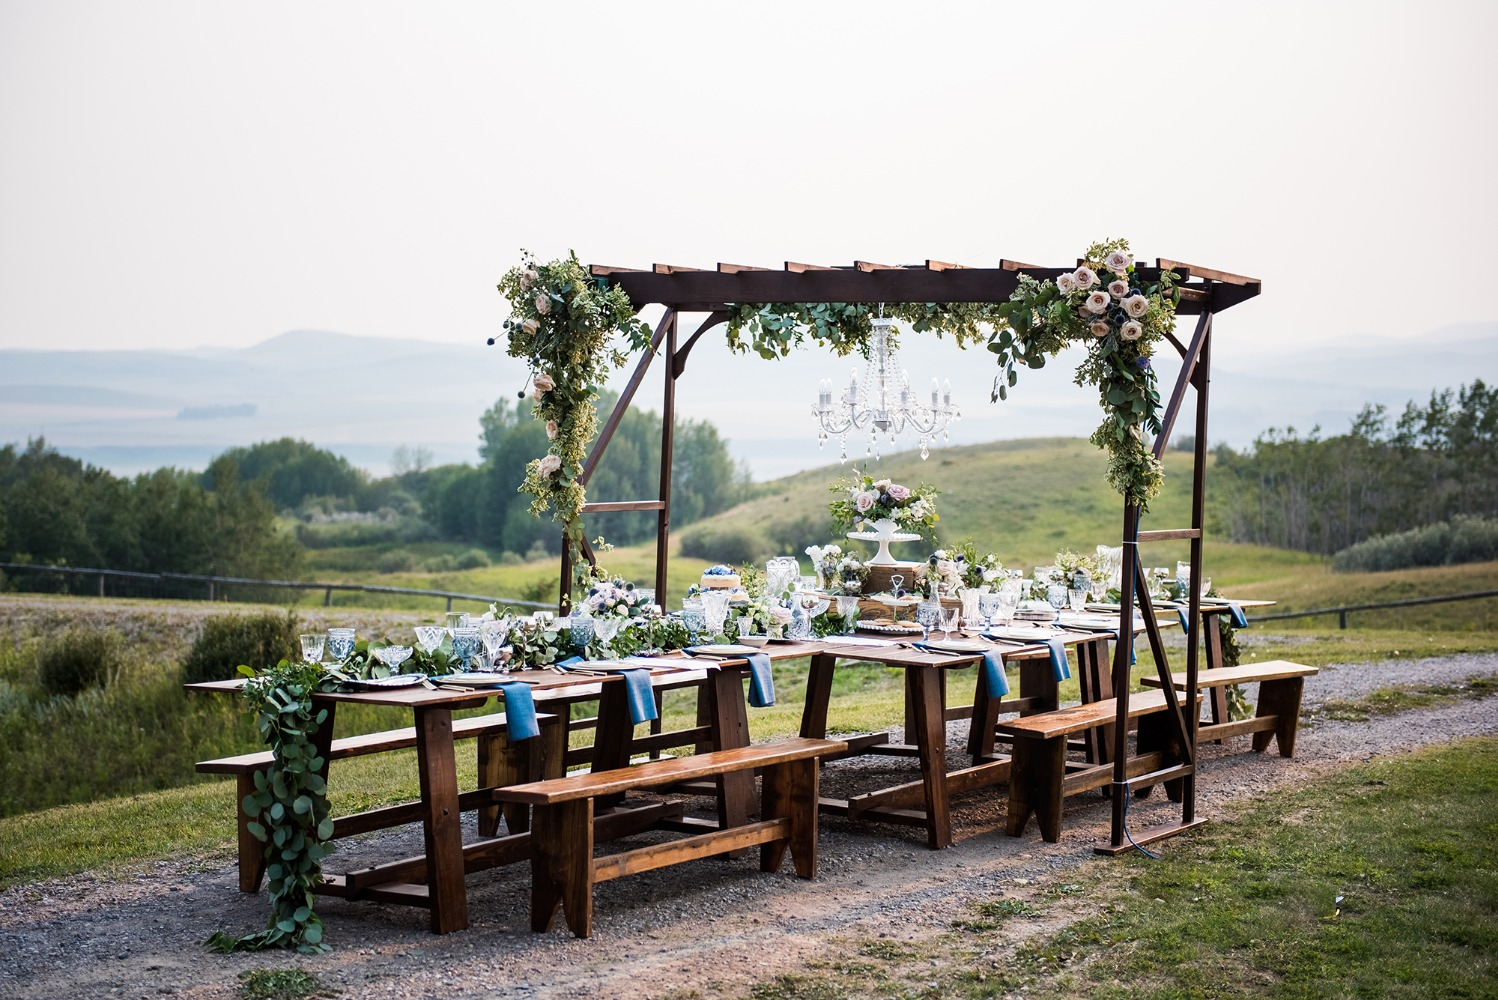 Rustic vintage table for a wedding